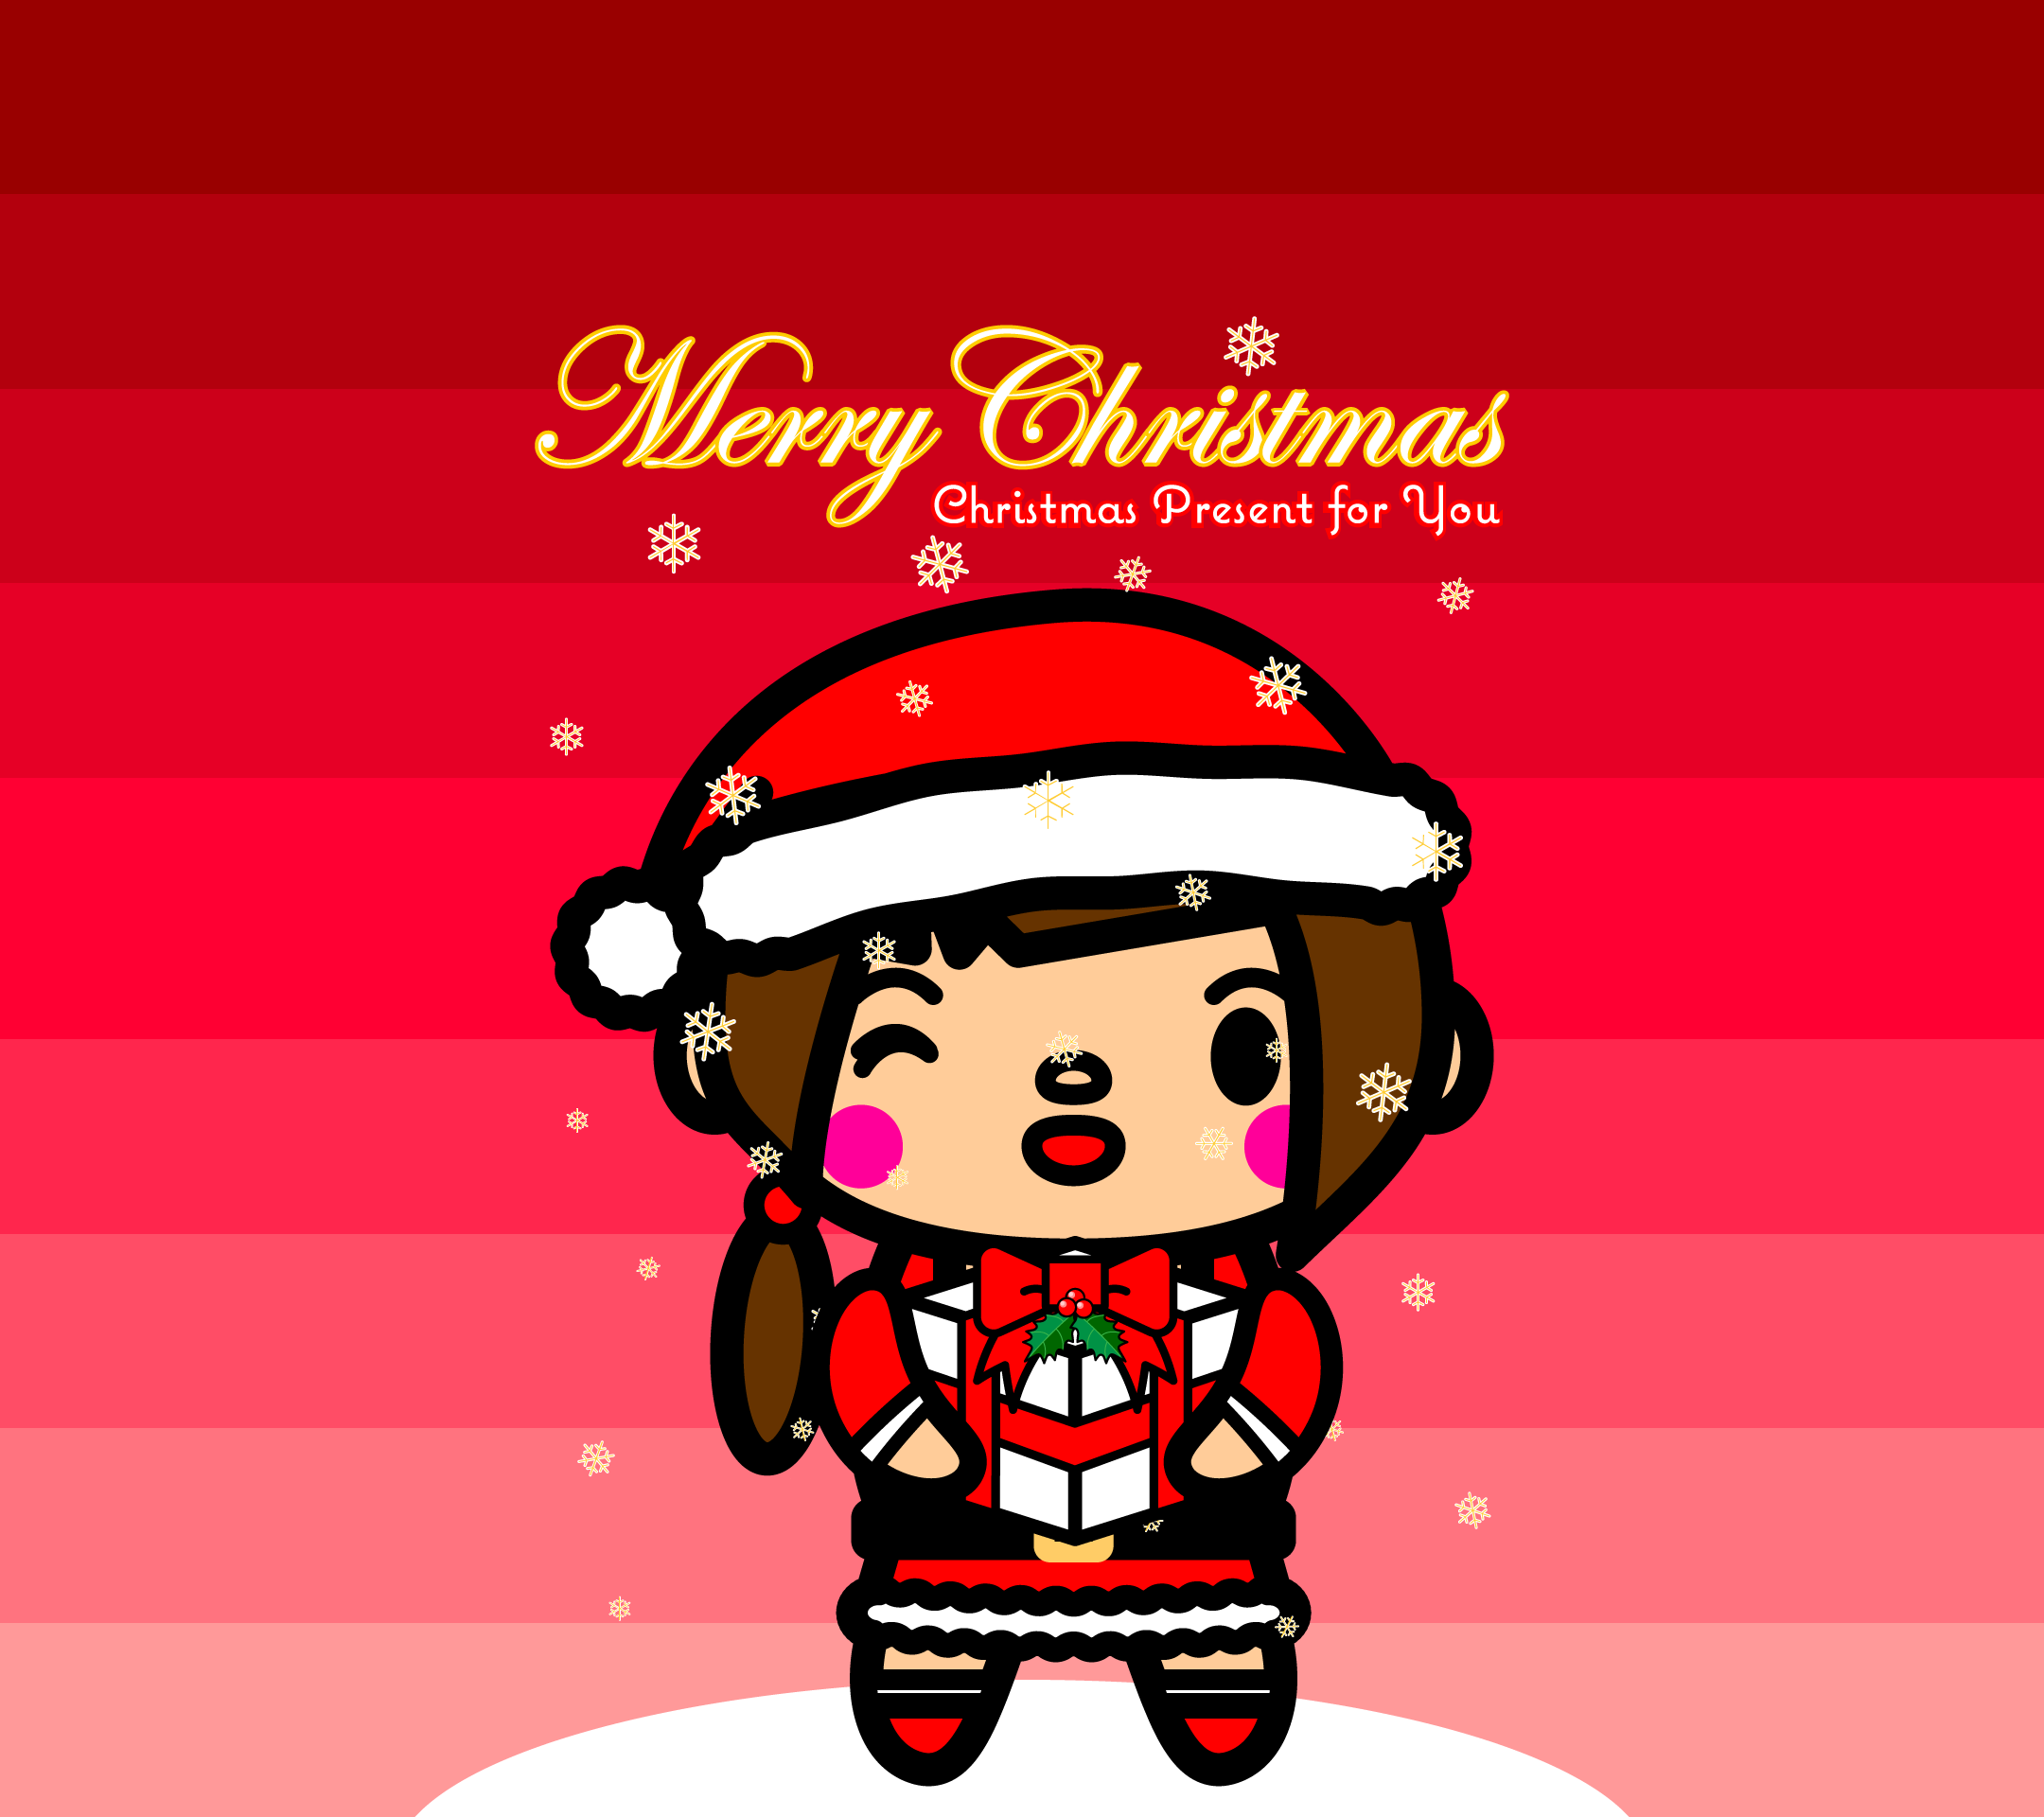 wallpaper6_christmas-santawoman-red-android